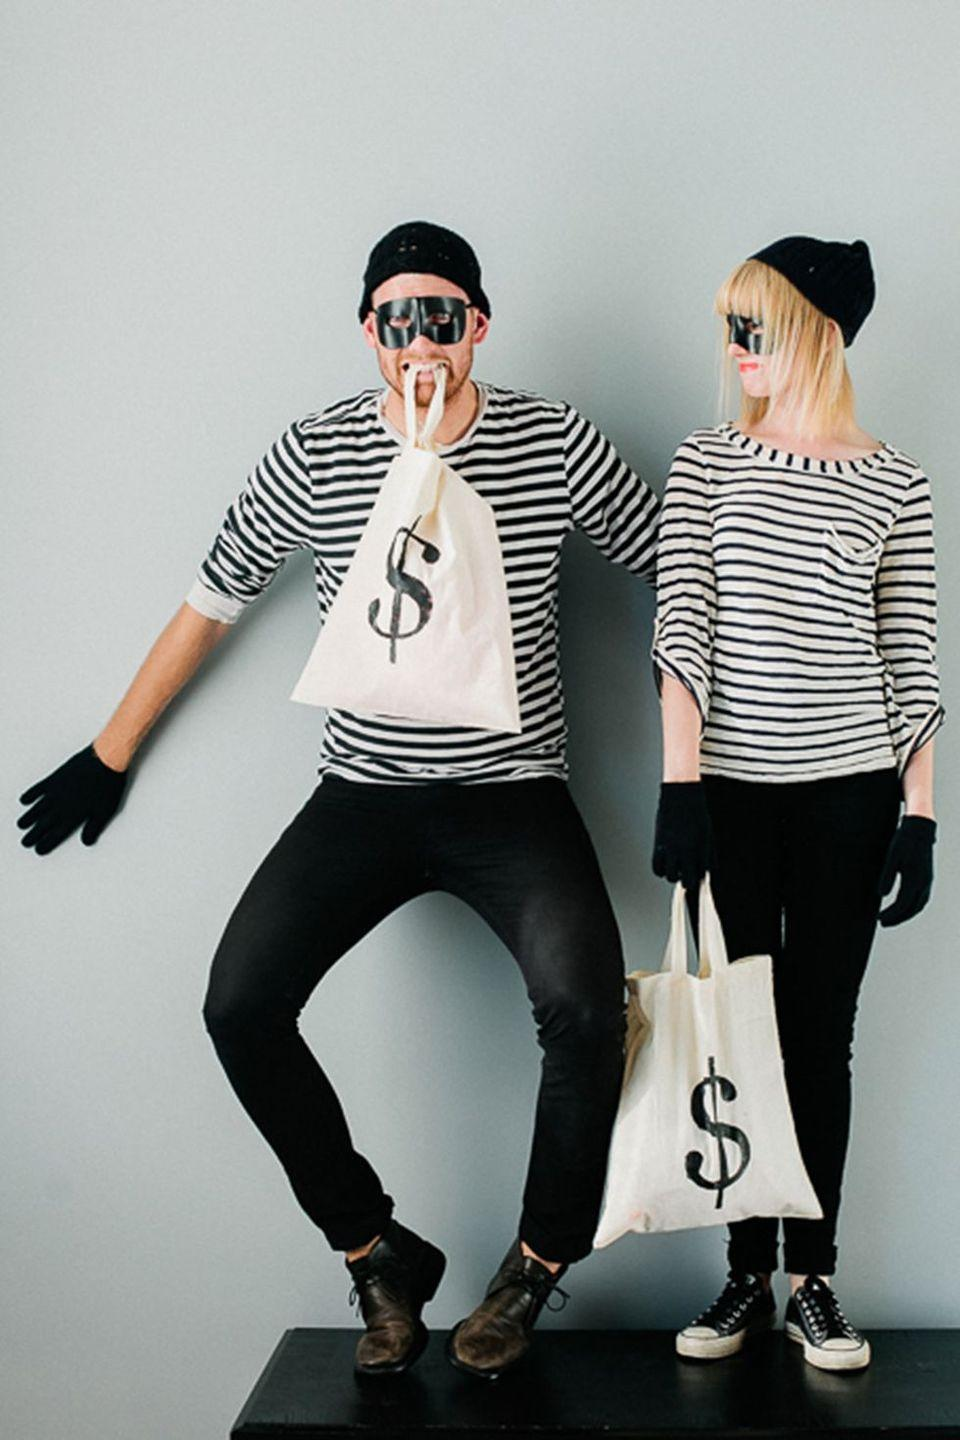 """<p>If the two of you are always getting into trouble, the bandits costume is perfect to opportunity to make light of your not-so-good ways.</p><p><a href=""""http://sayyes.com/2012/10/easy-and-last-minute-couples-costumes-pt-1"""" rel=""""nofollow noopener"""" target=""""_blank"""" data-ylk=""""slk:Get the tutorial at Say Yes >>"""" class=""""link rapid-noclick-resp""""><em>Get the tutorial at Say Yes >></em> </a></p>"""